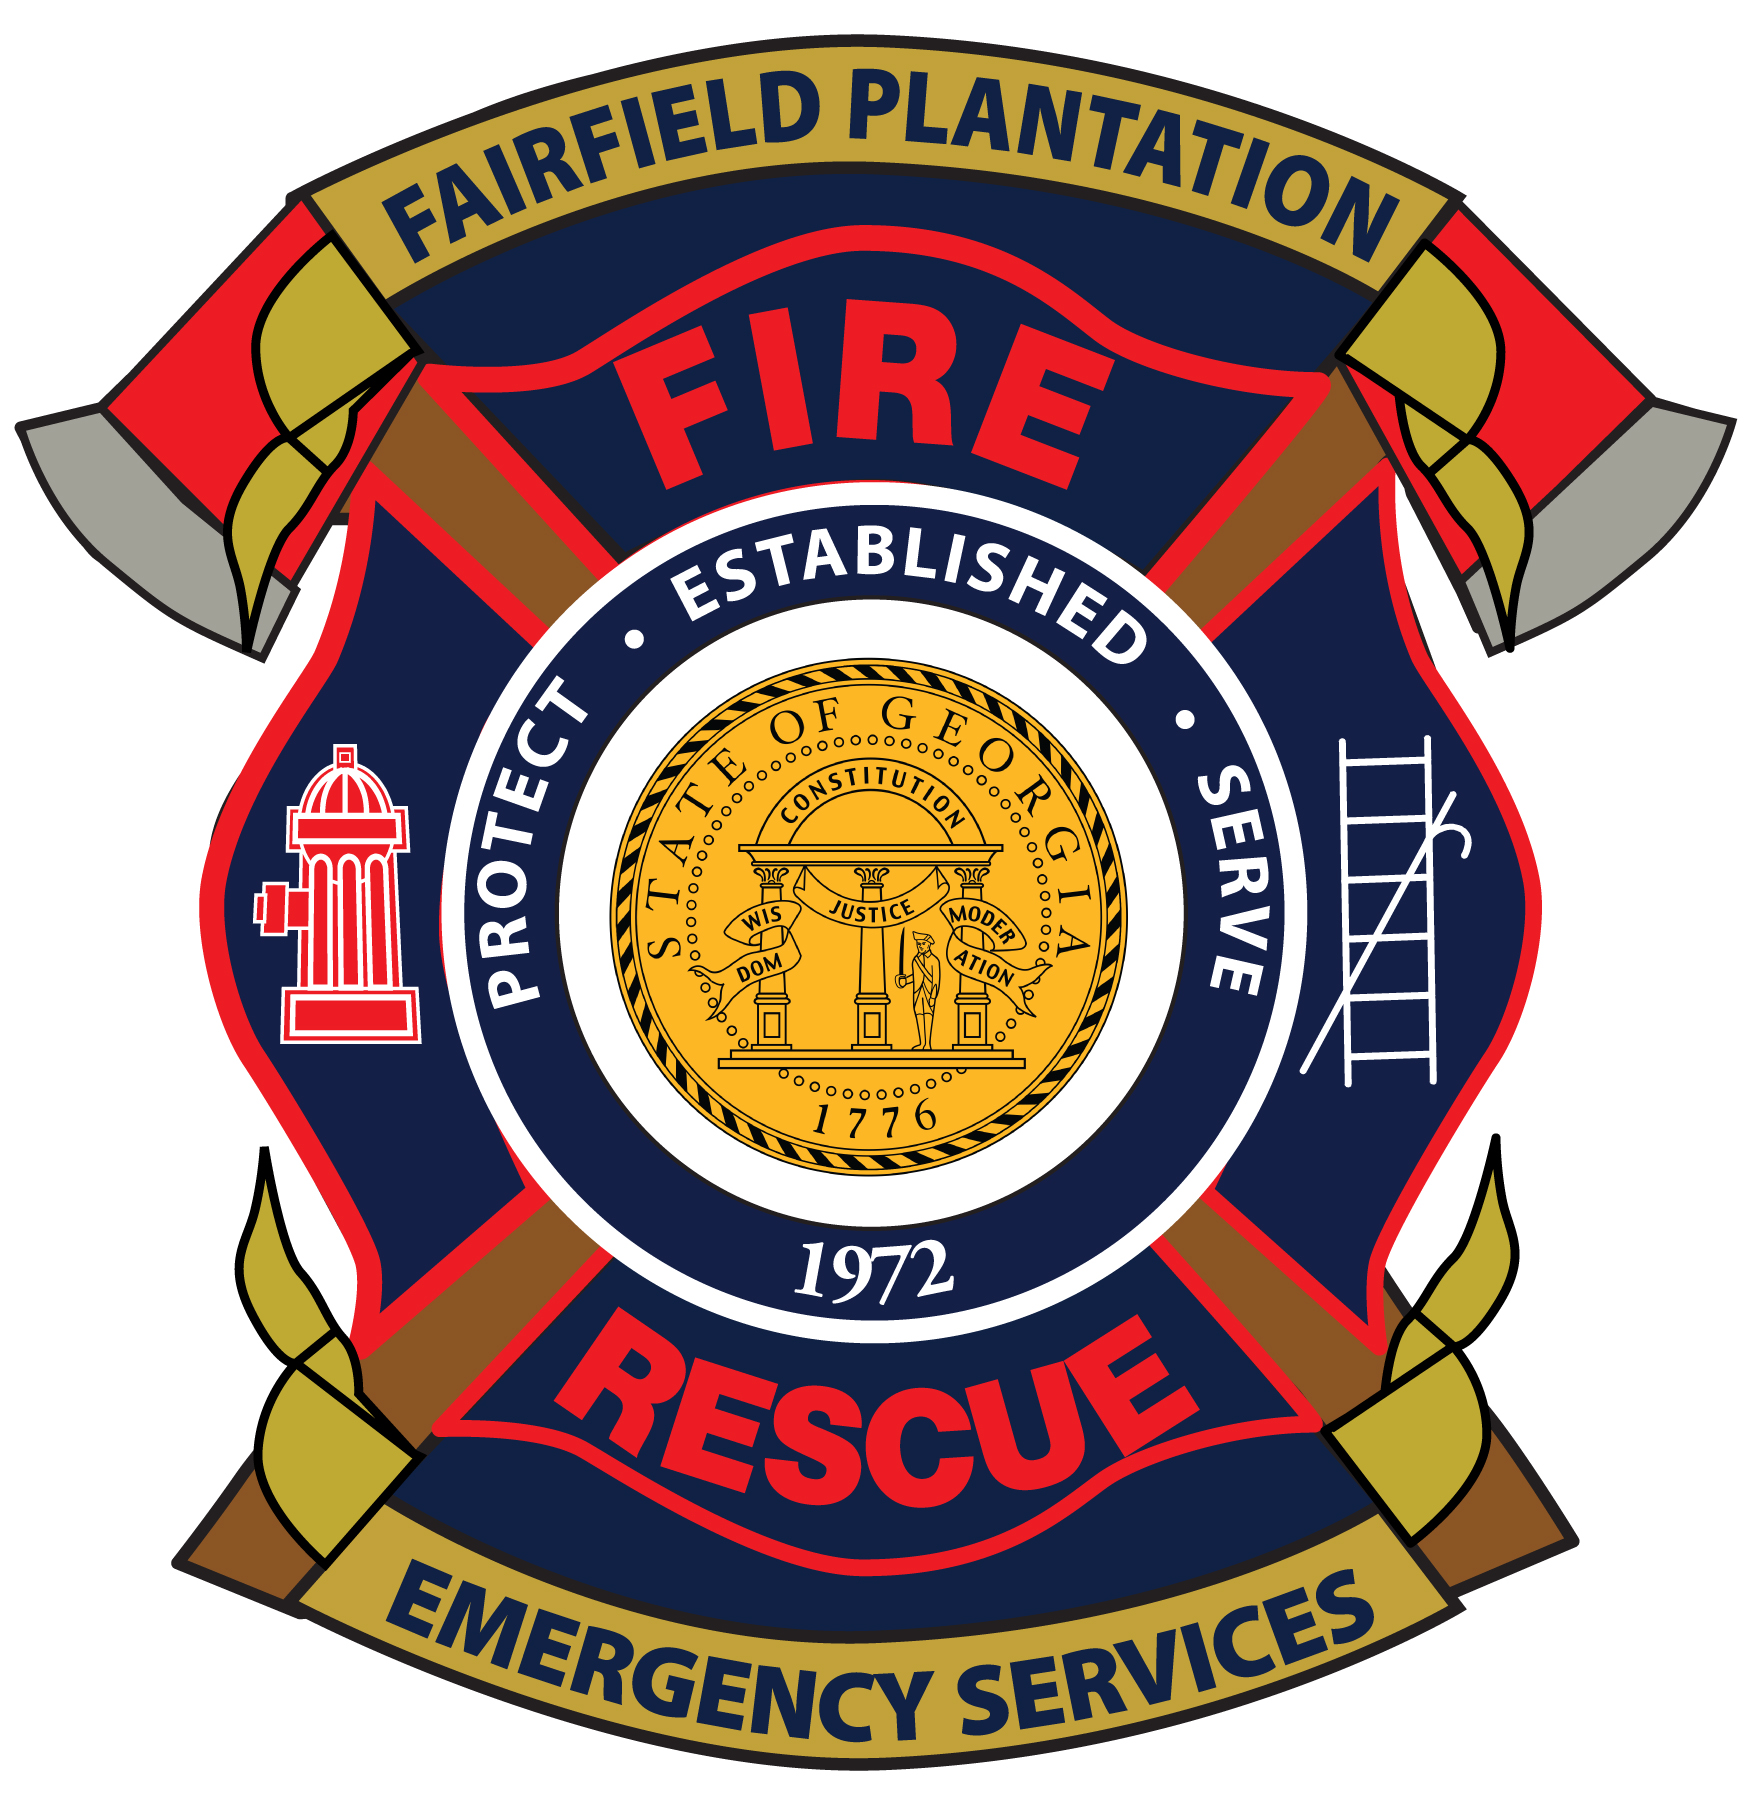 Fire department seal clipart.